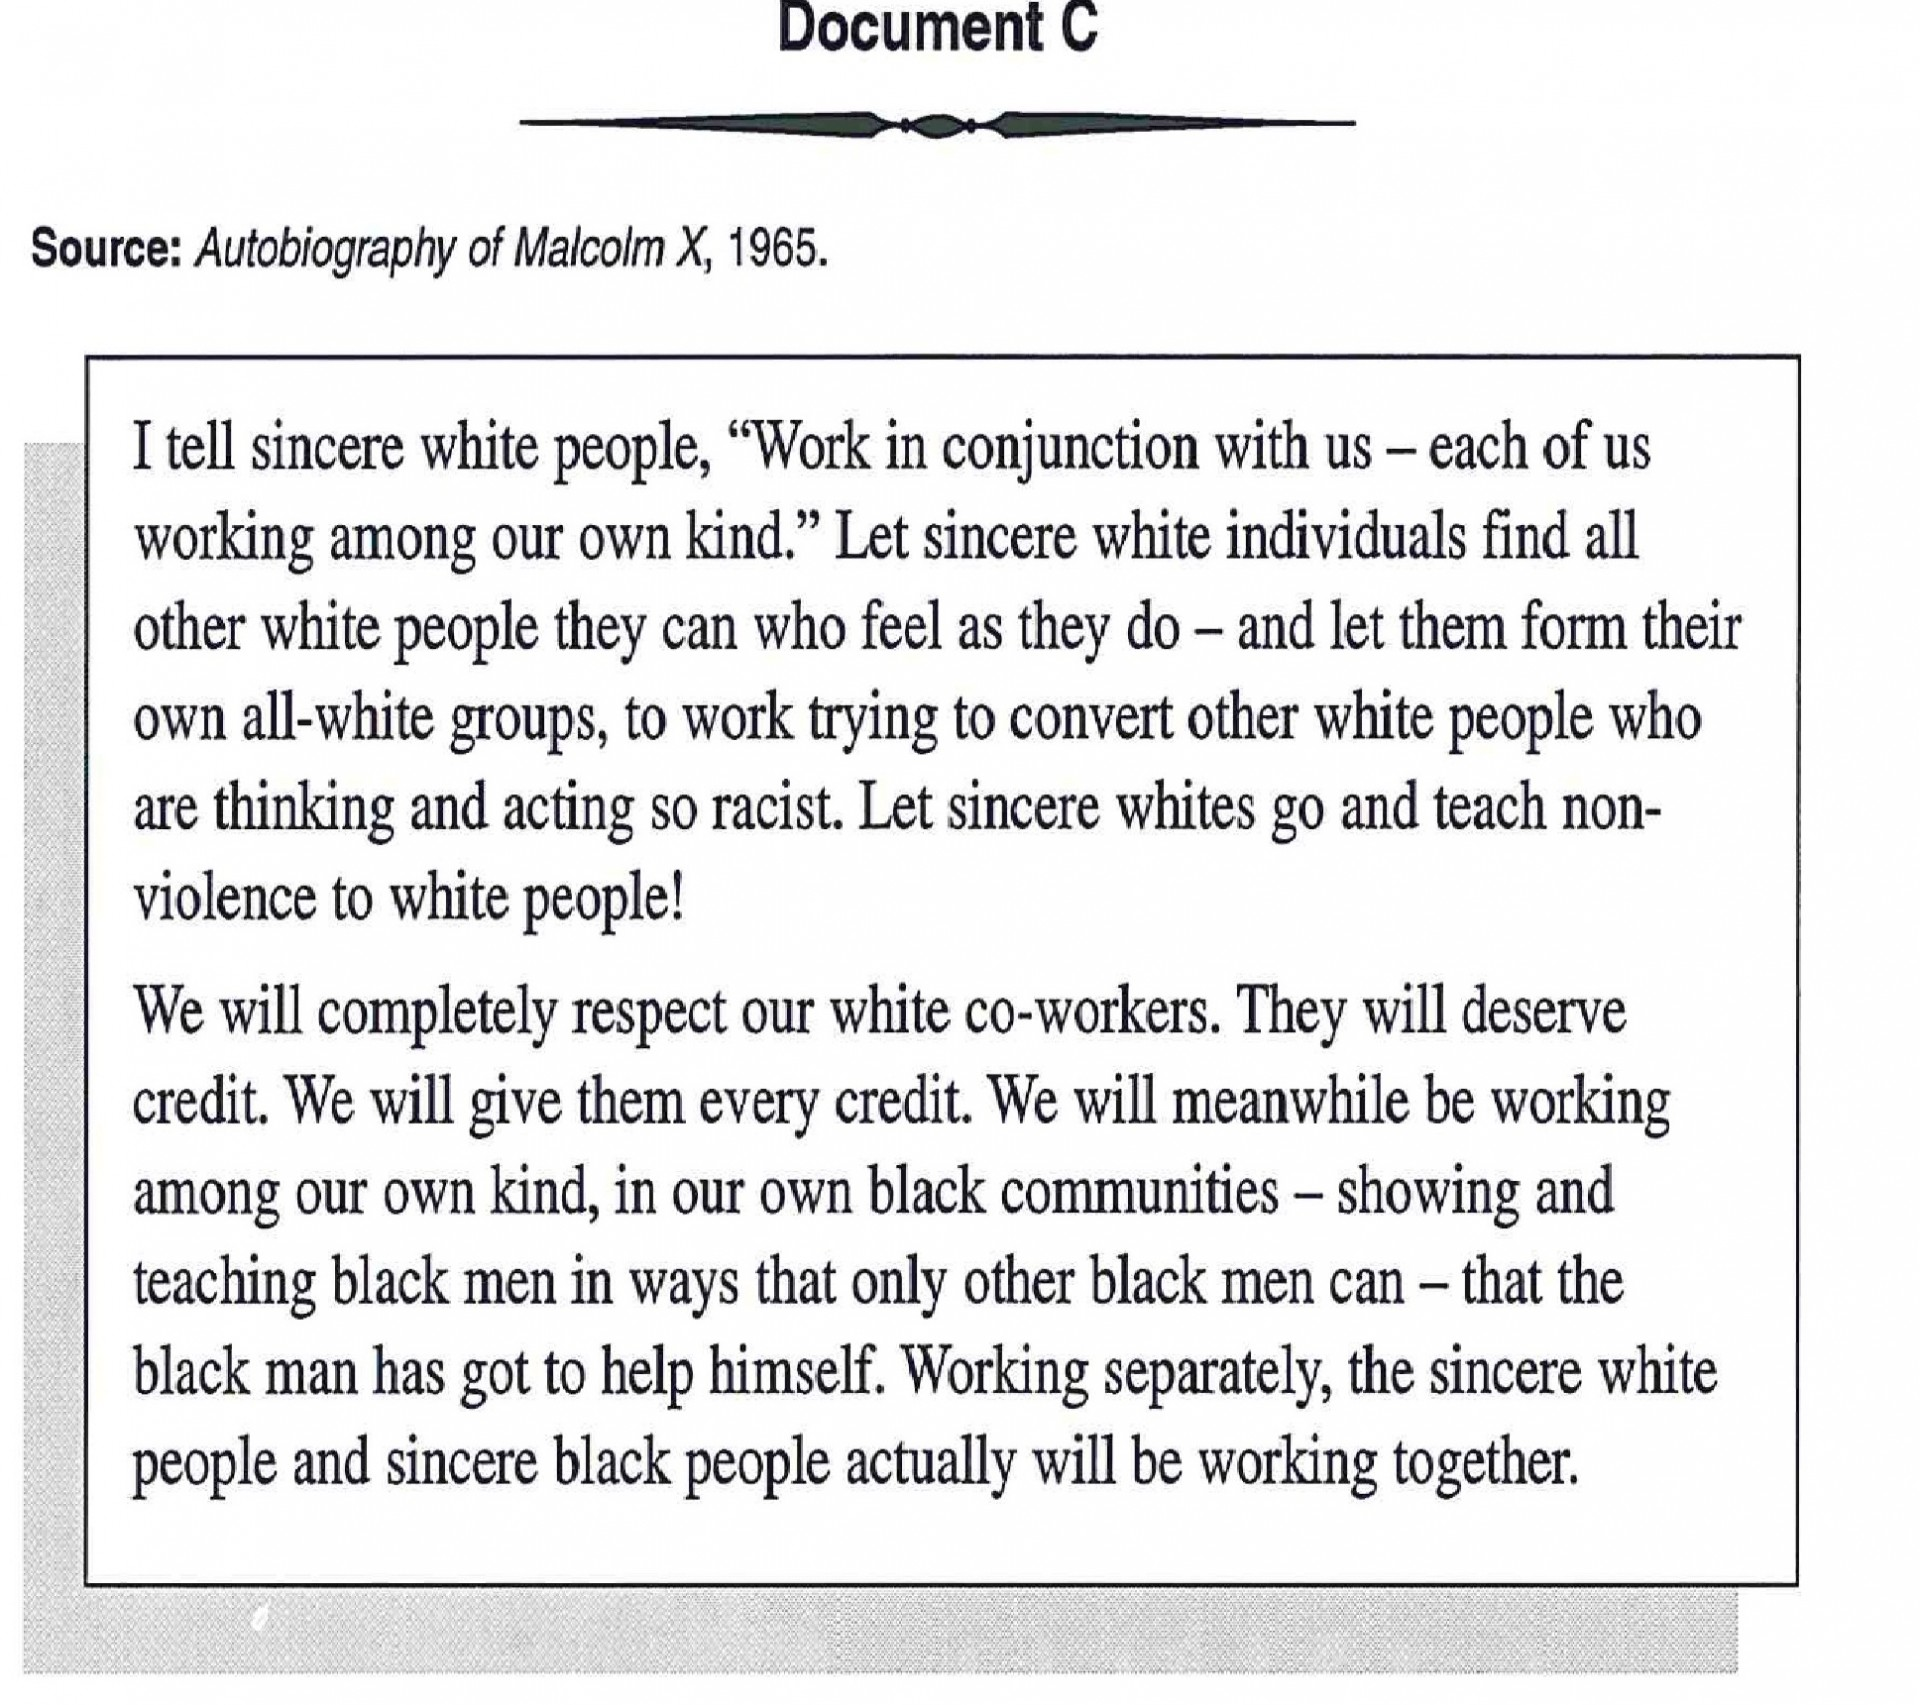 007 Mlk Essay Best Conclusion Writing Prompts Contest 2017 1920